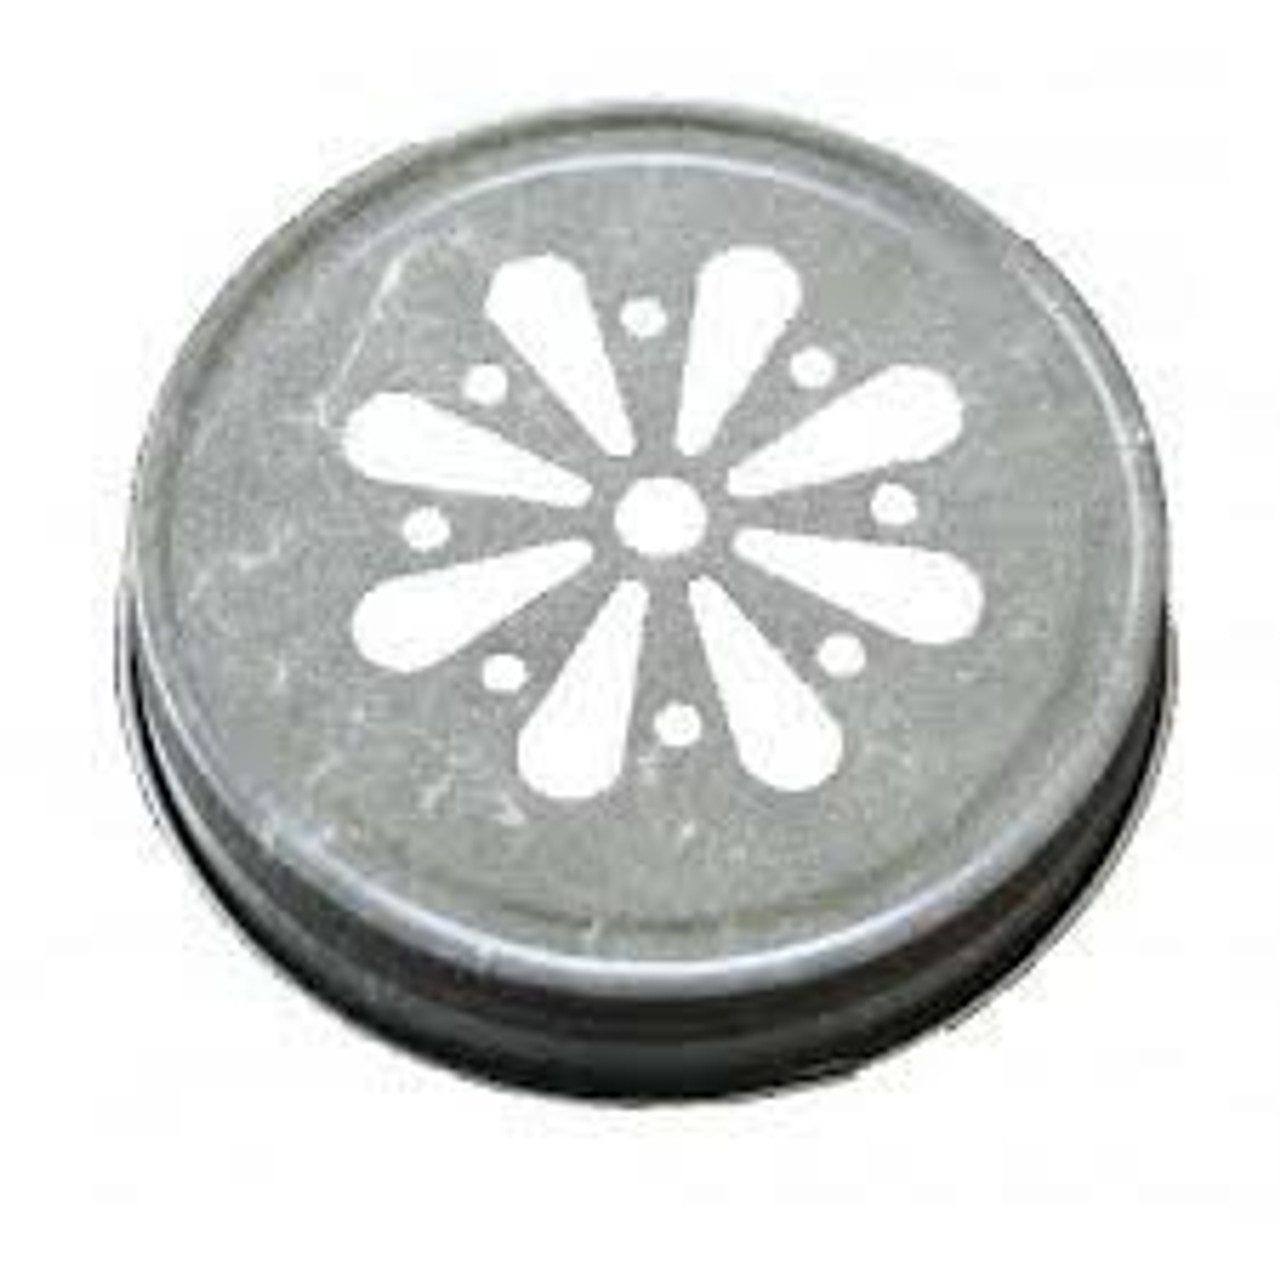 Antique Pewter Silver Color Mason Jar Lids with Daisy shape die cut